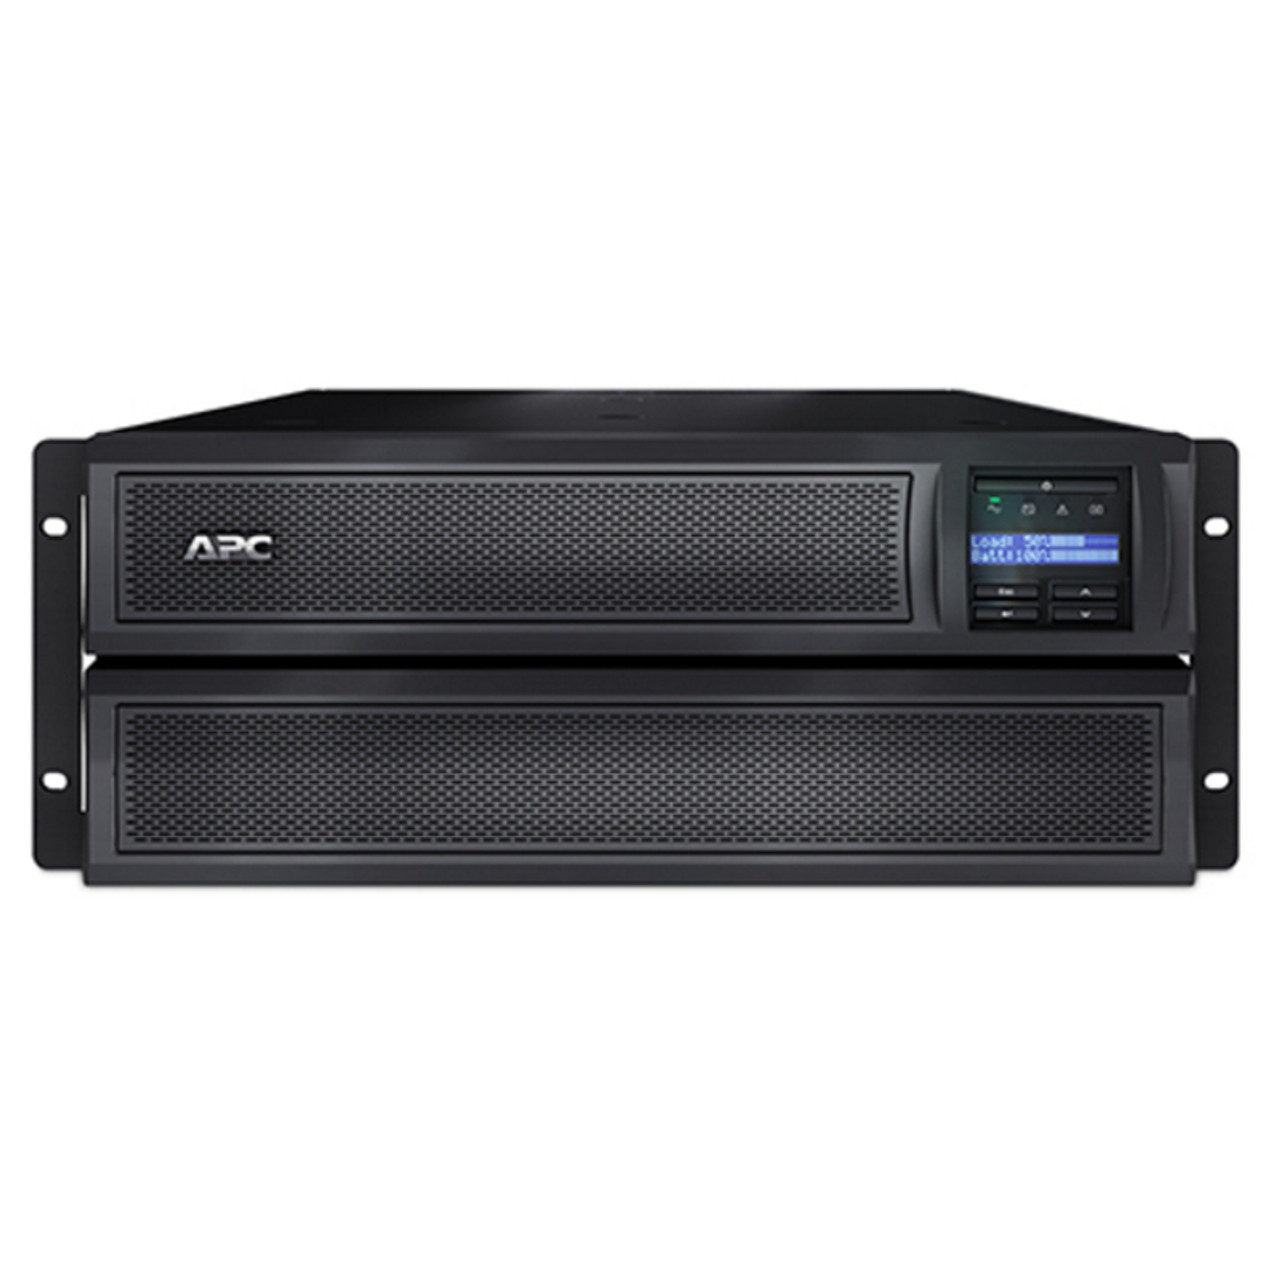 Image for APC SMX3000HVNC X 3000VA 200-240V Line Interactive Smart UPS w/ Network Card CX Computer Superstore